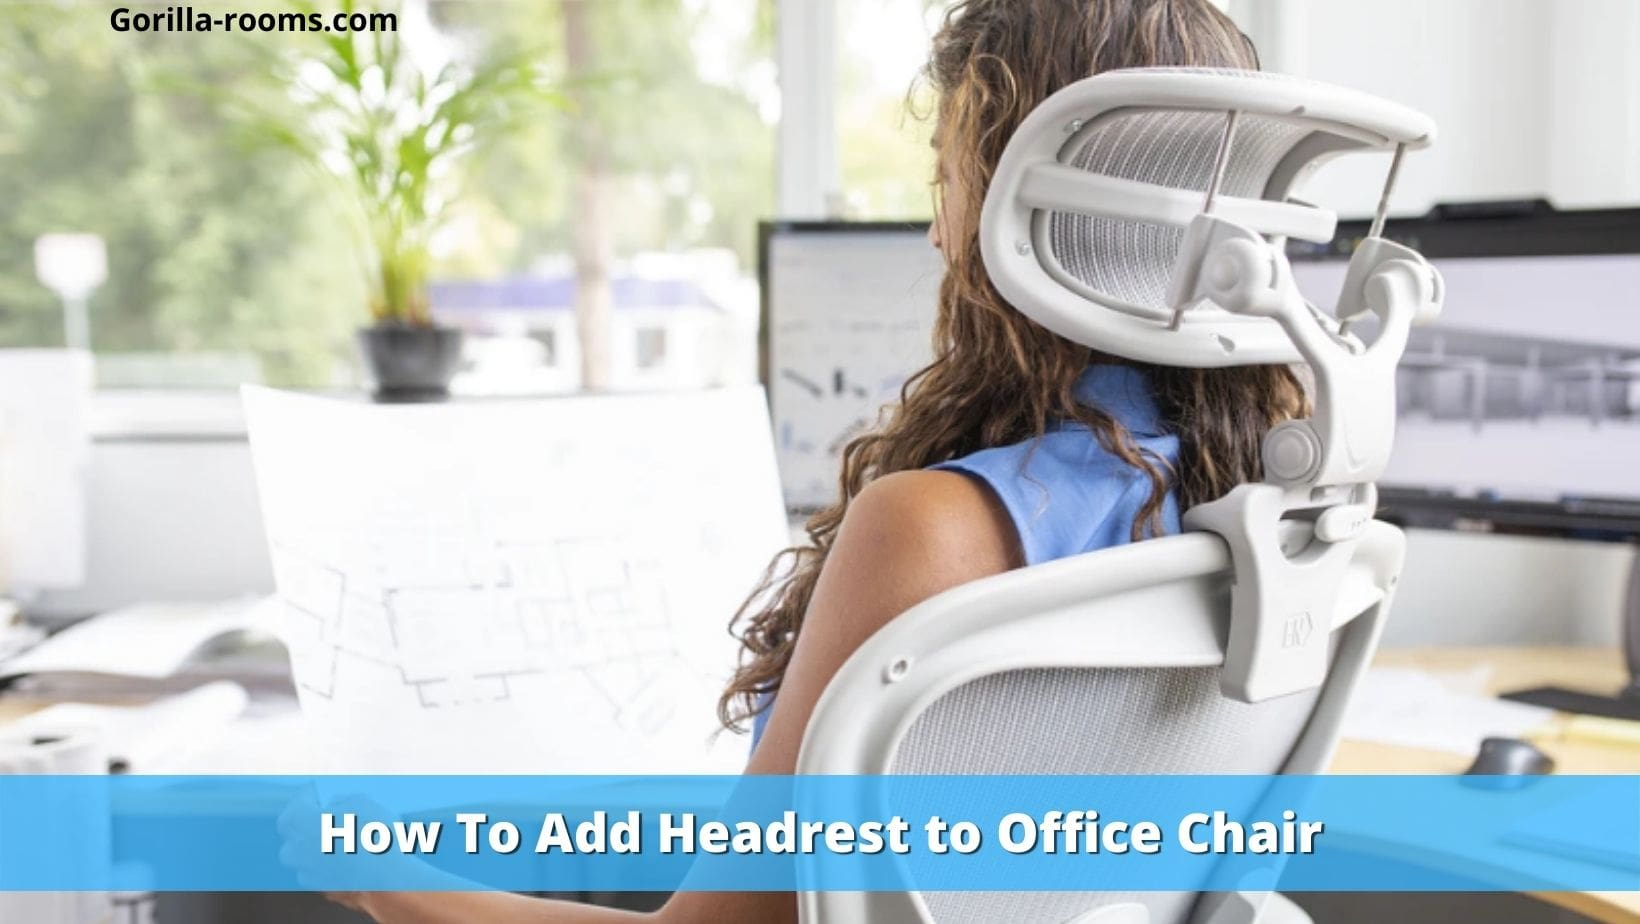 How to add headrest to office chair